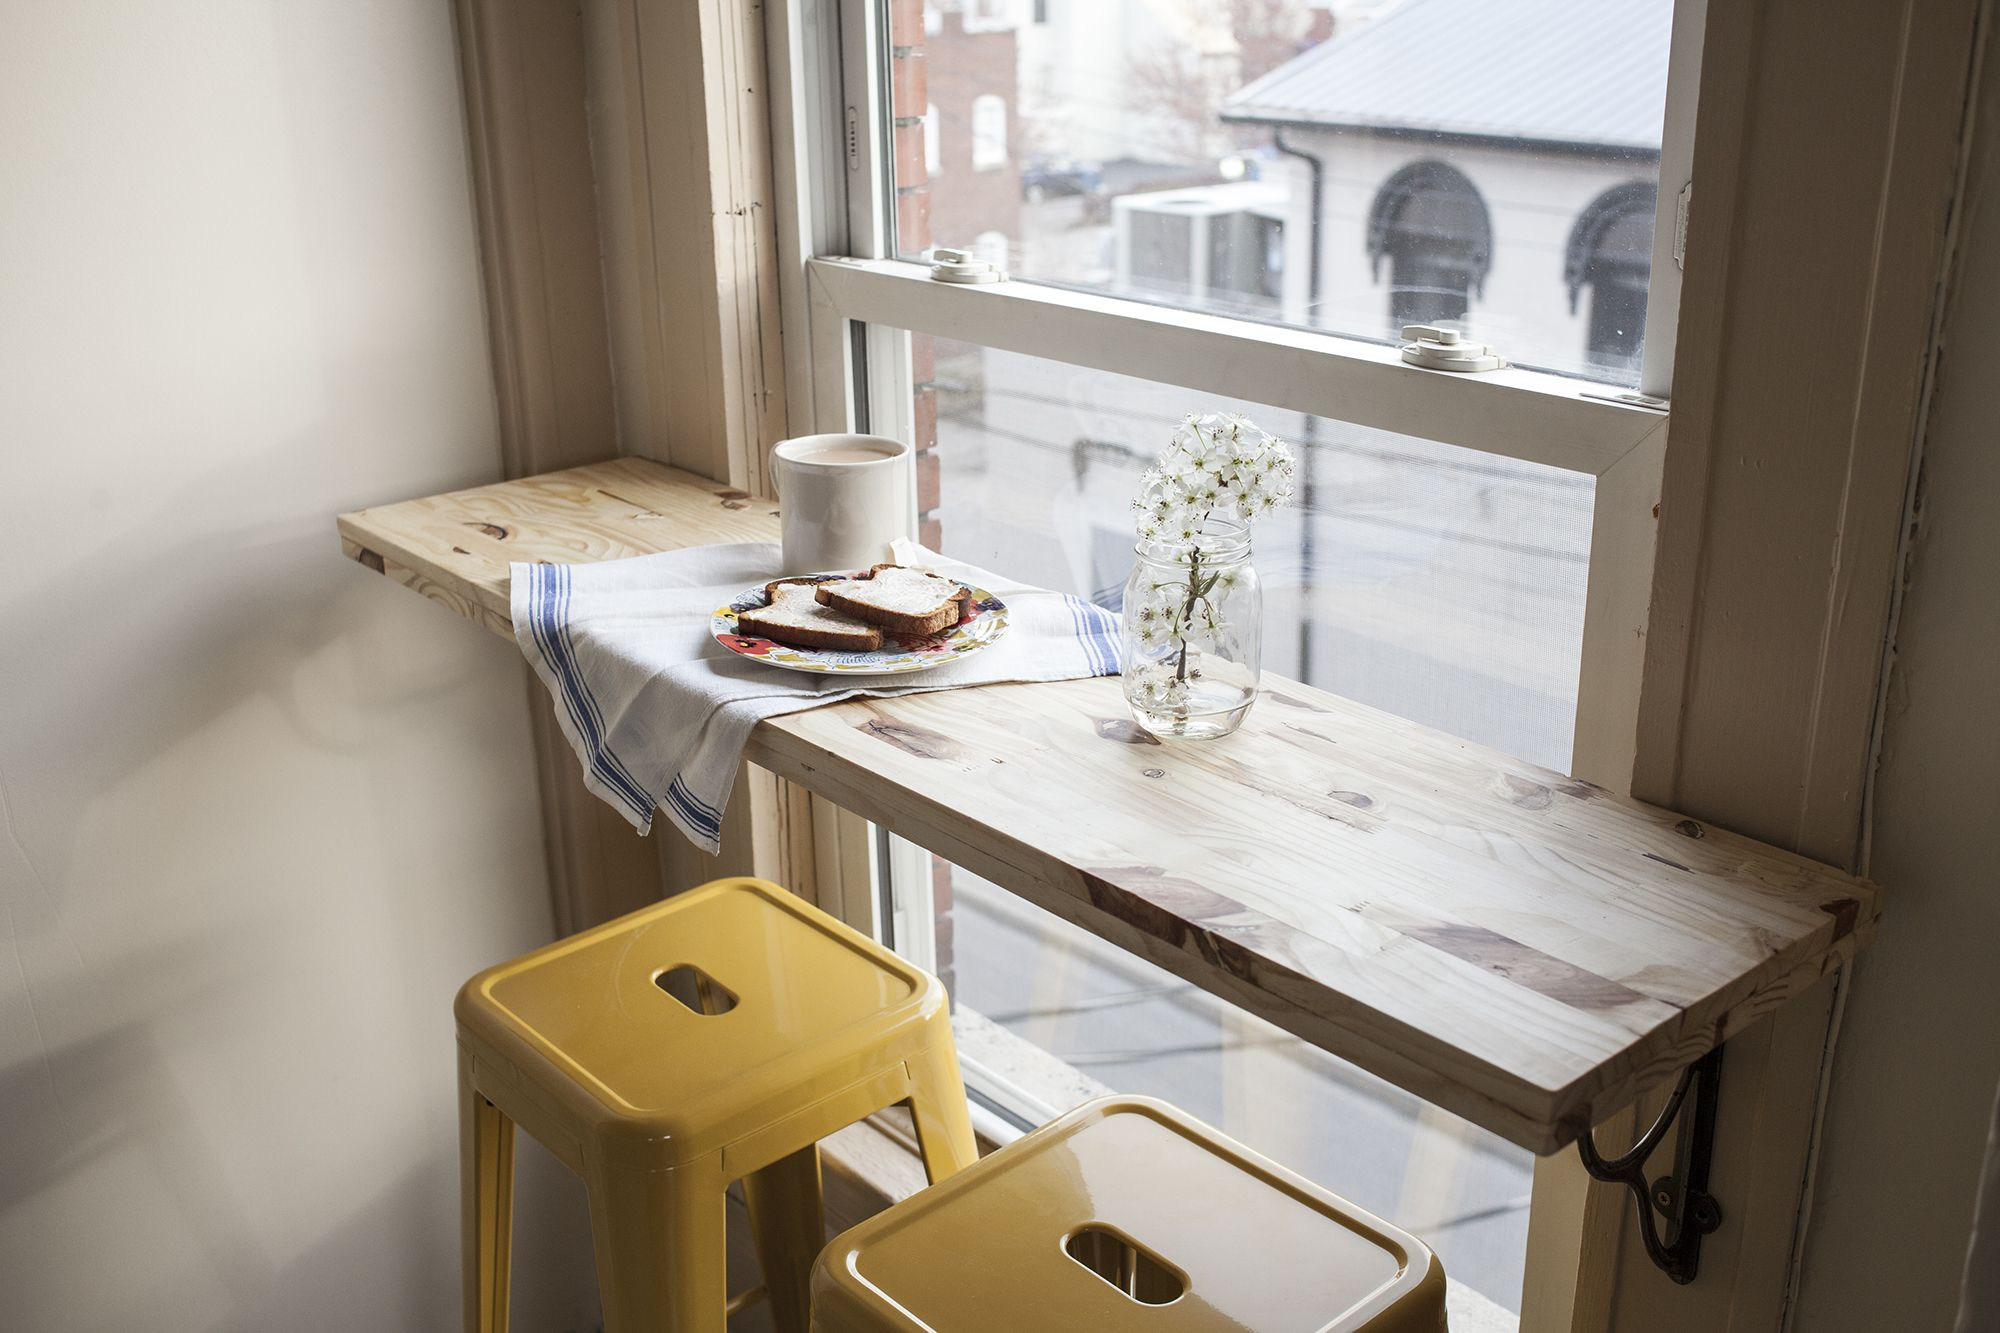 7 Genius Ways To Design A Small Space Small Apartment Decorating Home Kitchens Small Space Design